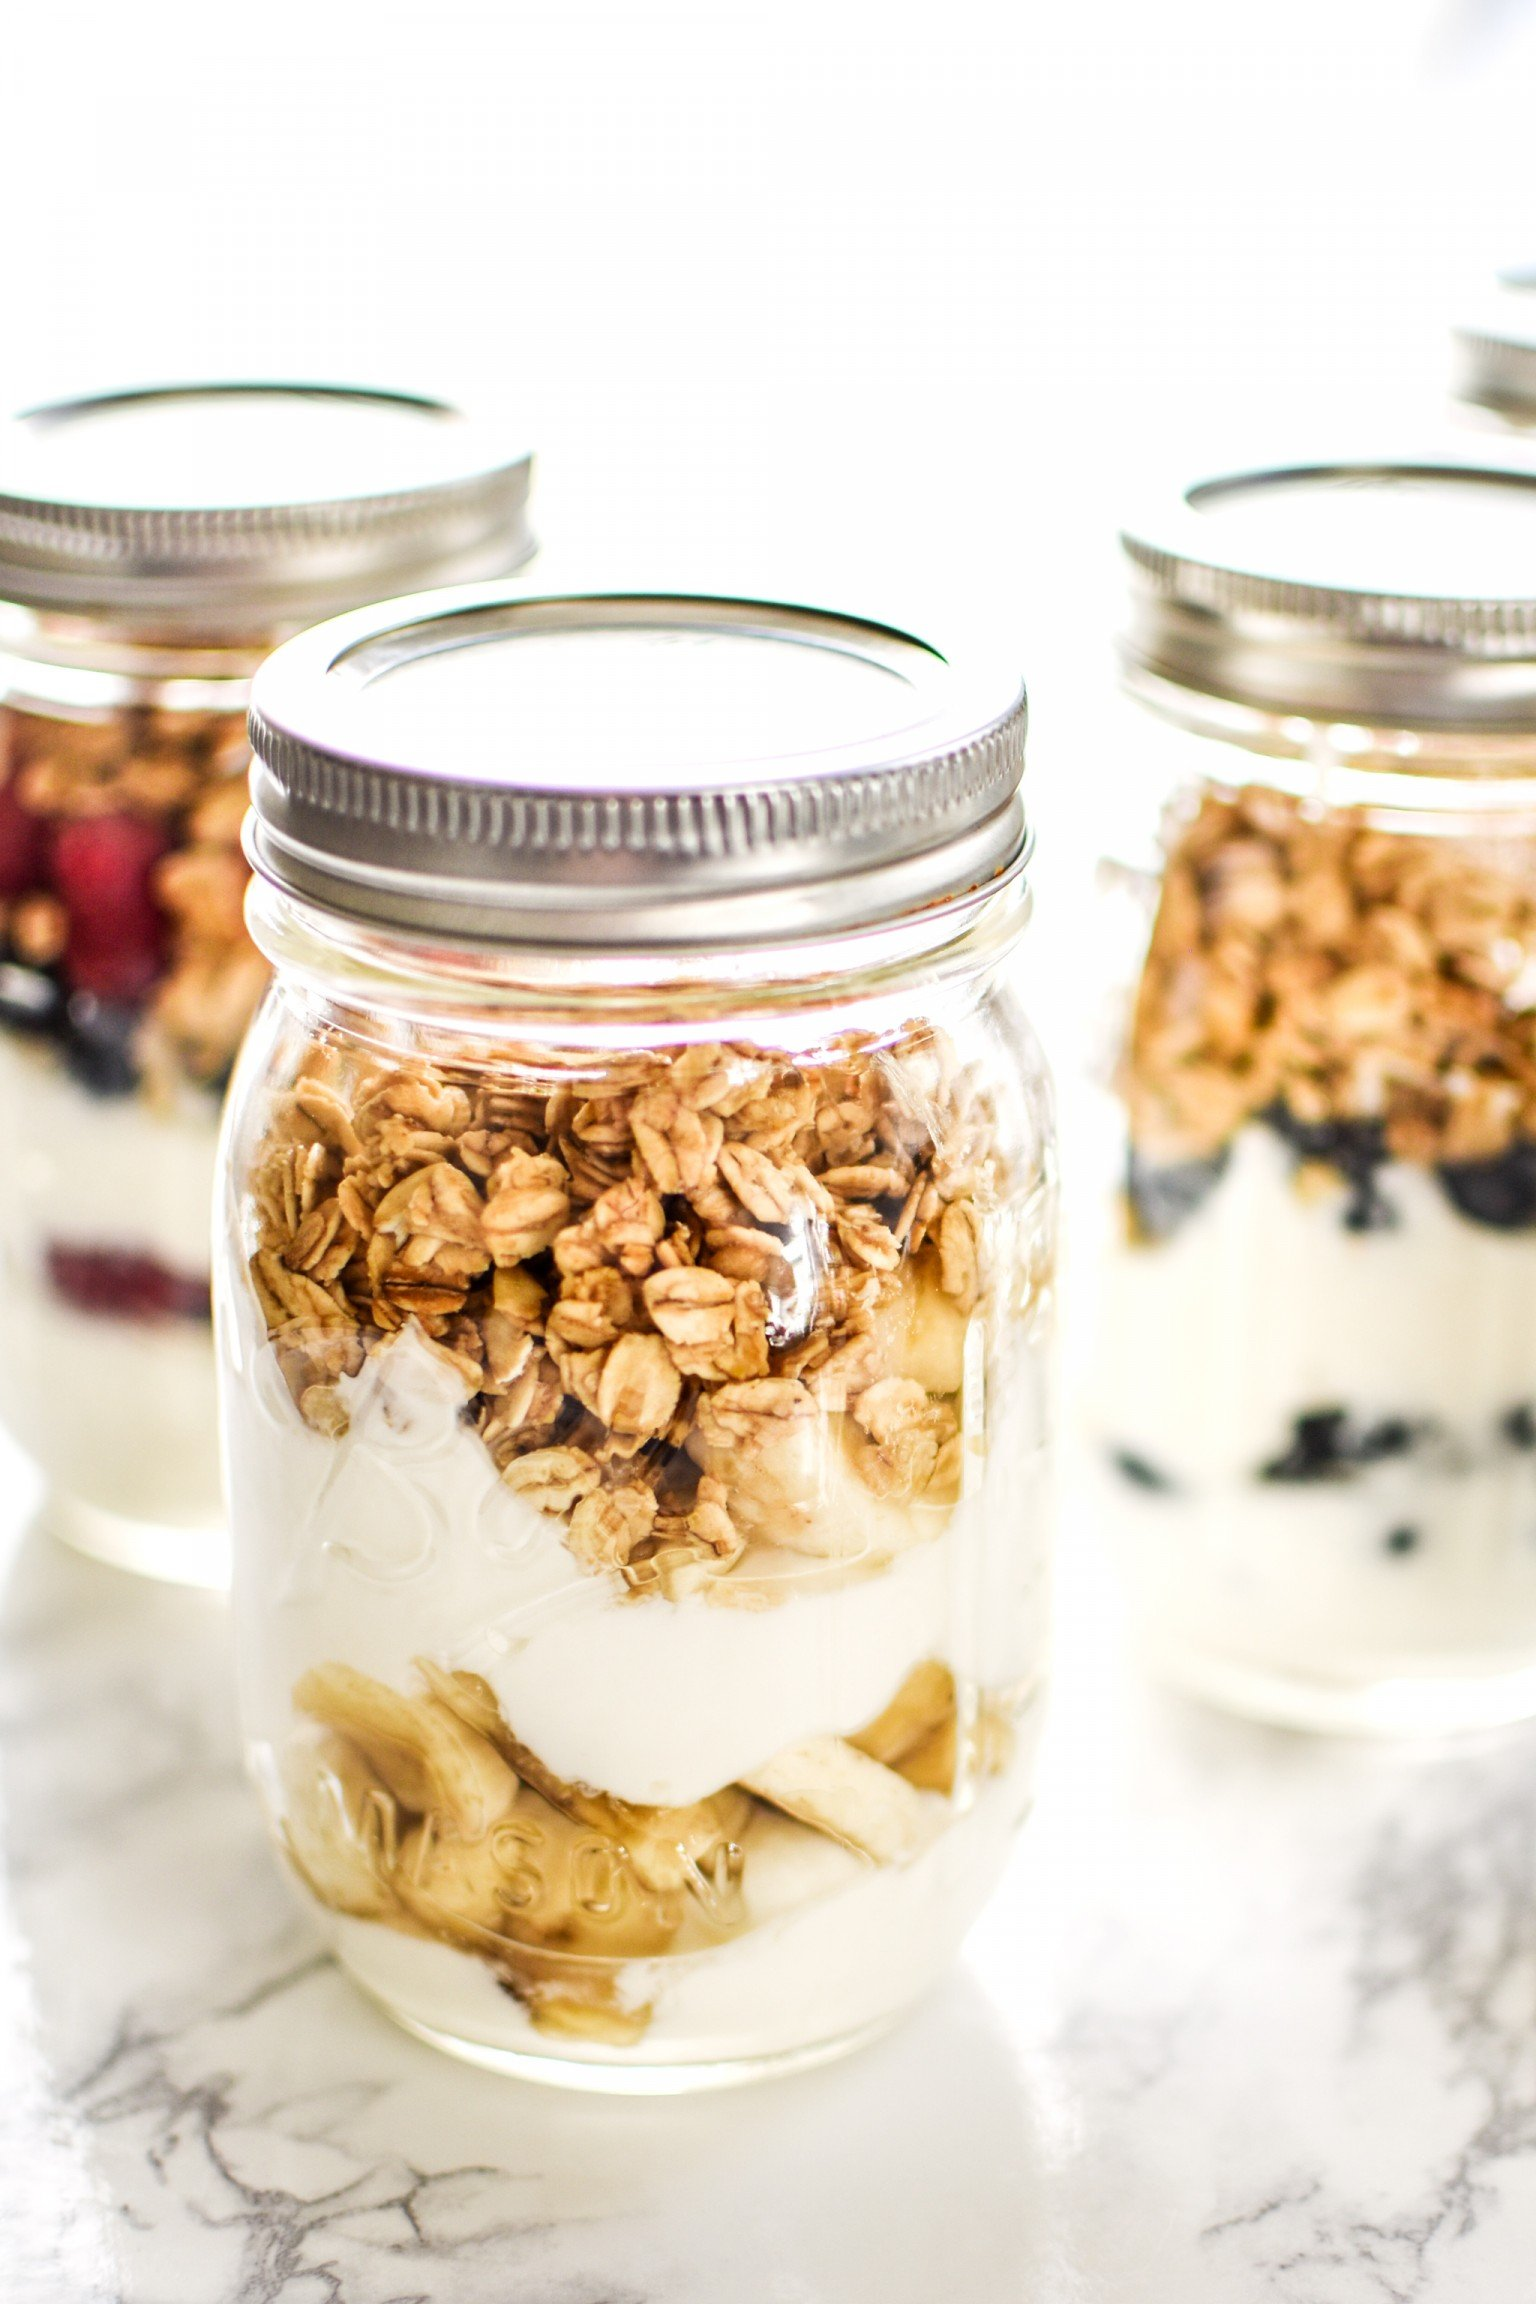 5 Make-Ahead Fruit & Greek Yogurt Parfaits